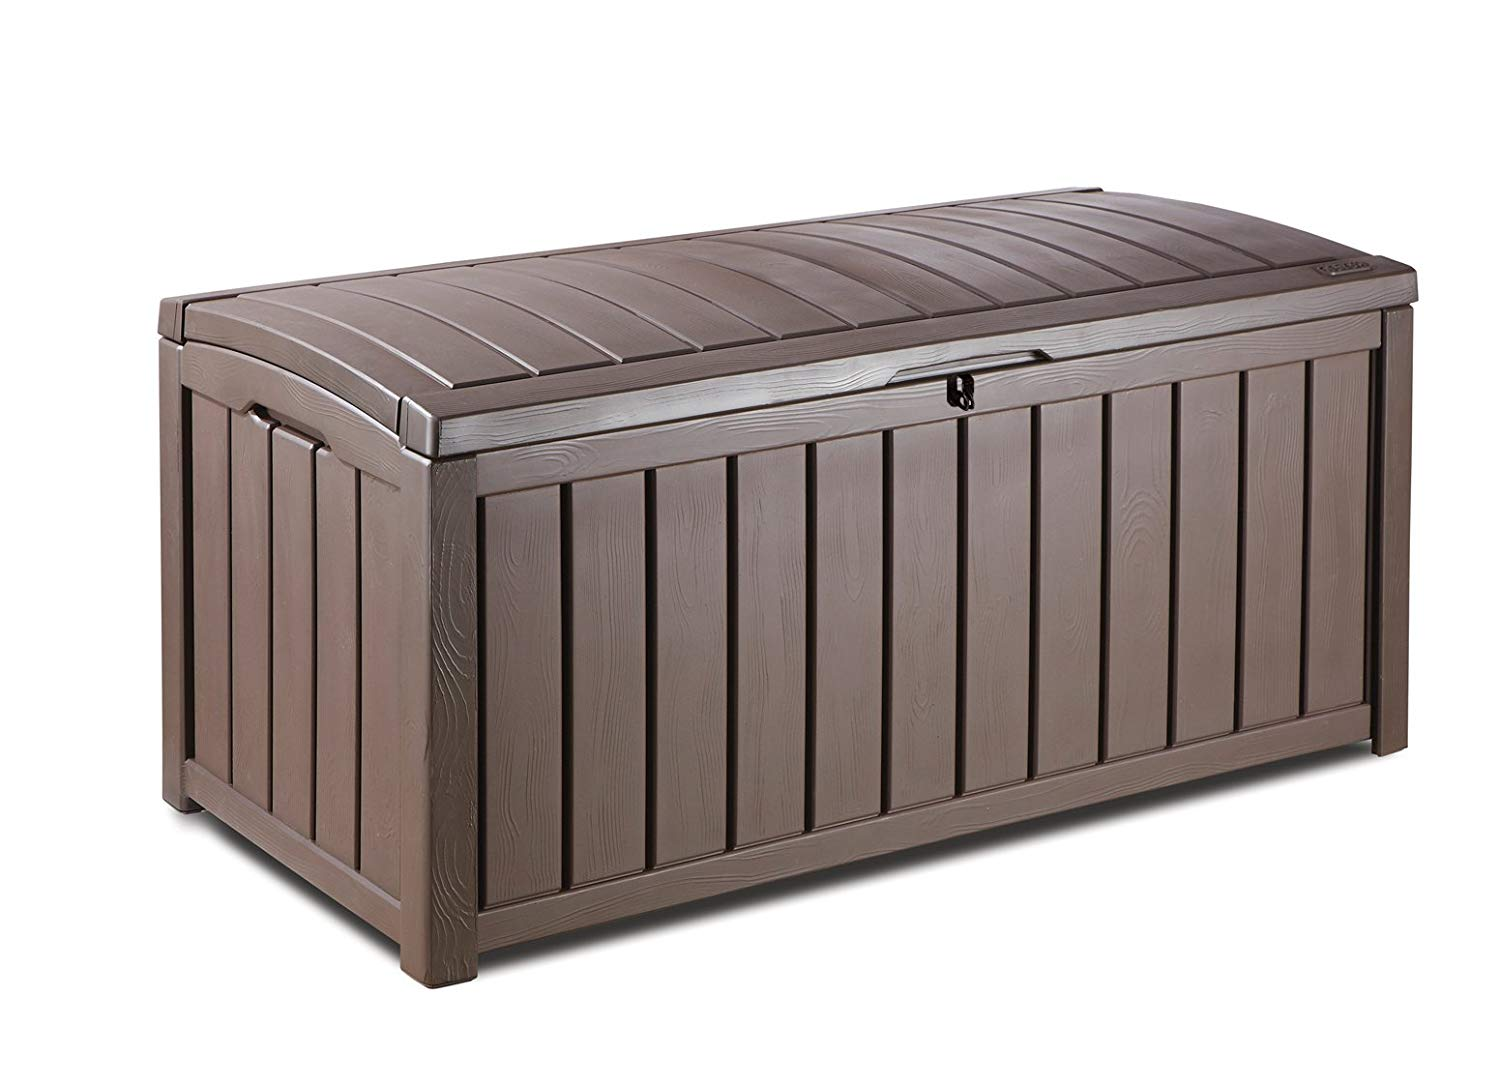 garden storage boxes amazon.com: keter glenwood plastic deck storage container box 101 gal: home HPUTYMM